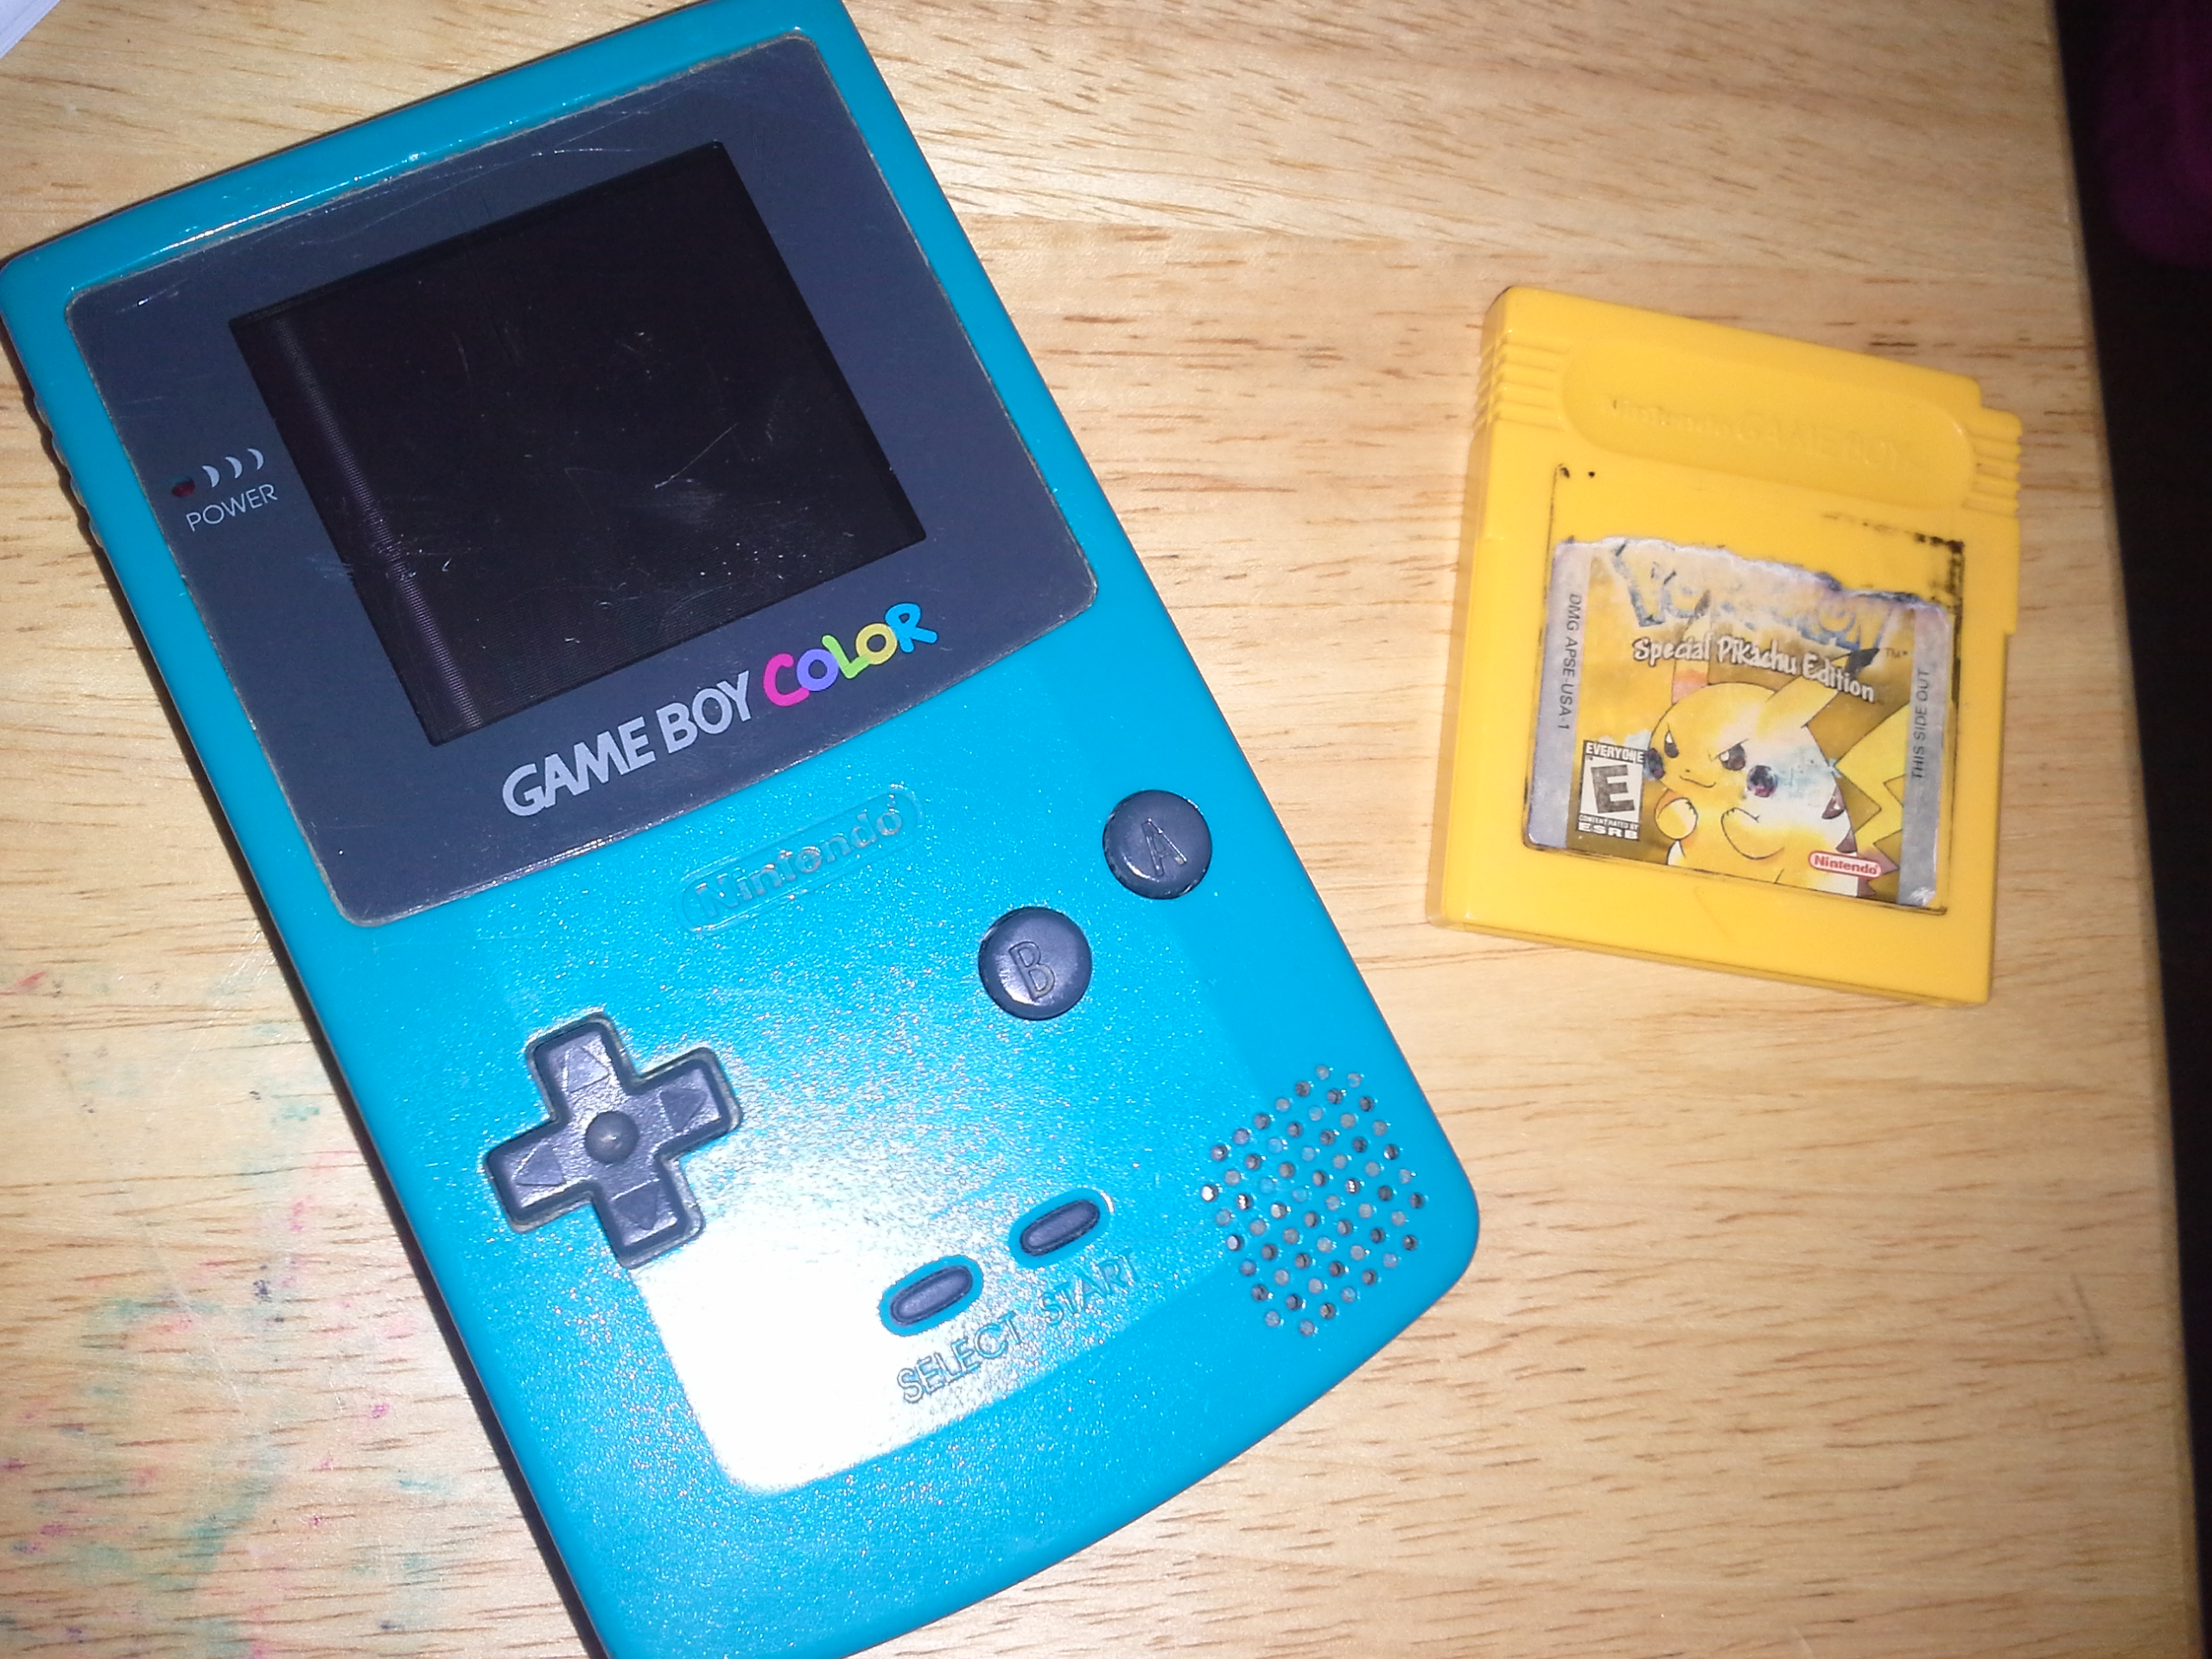 Gameboy color and pokemon yellow - Image